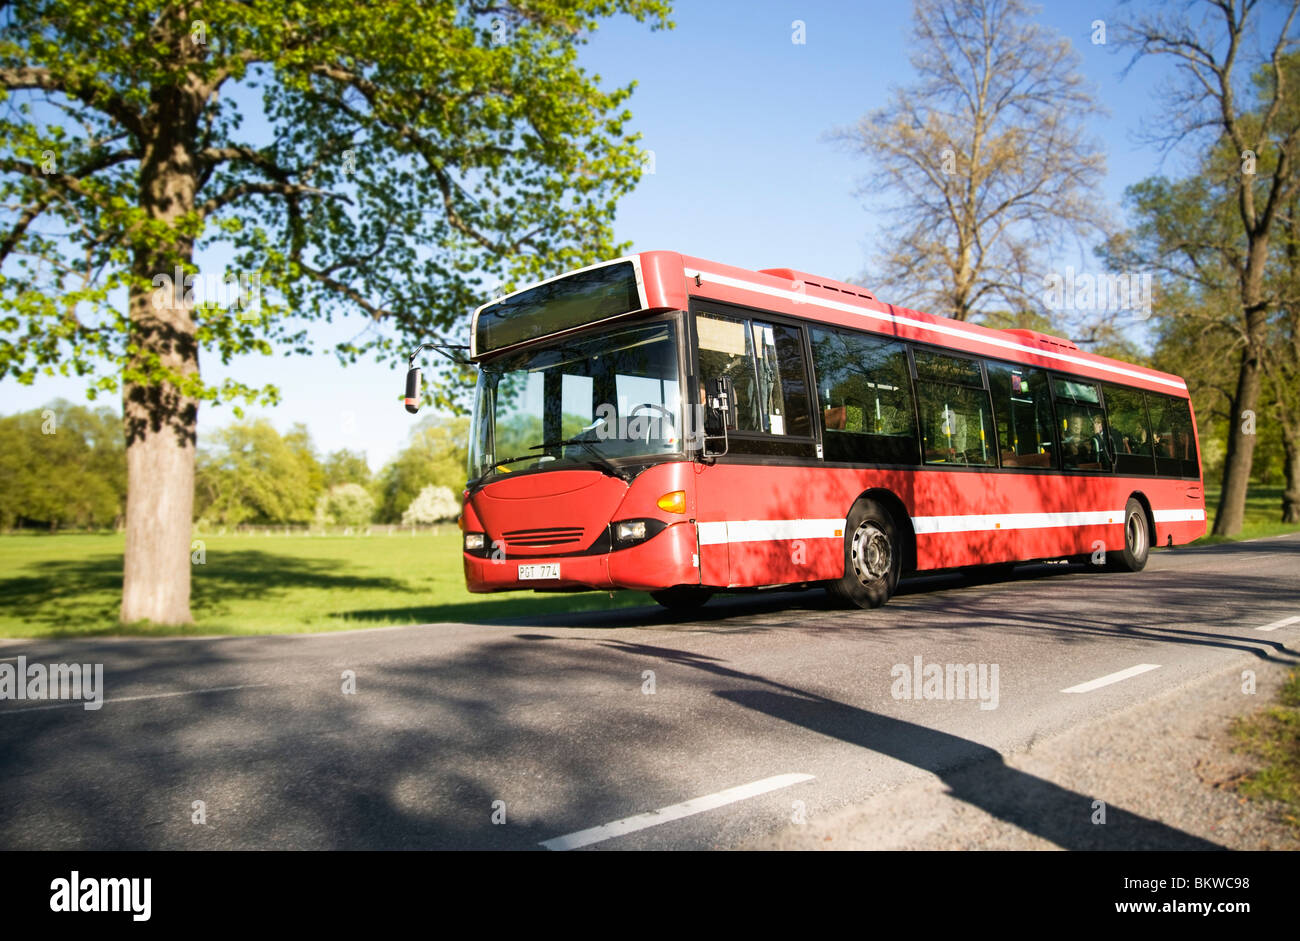 Bus standing by the verge - Stock Image